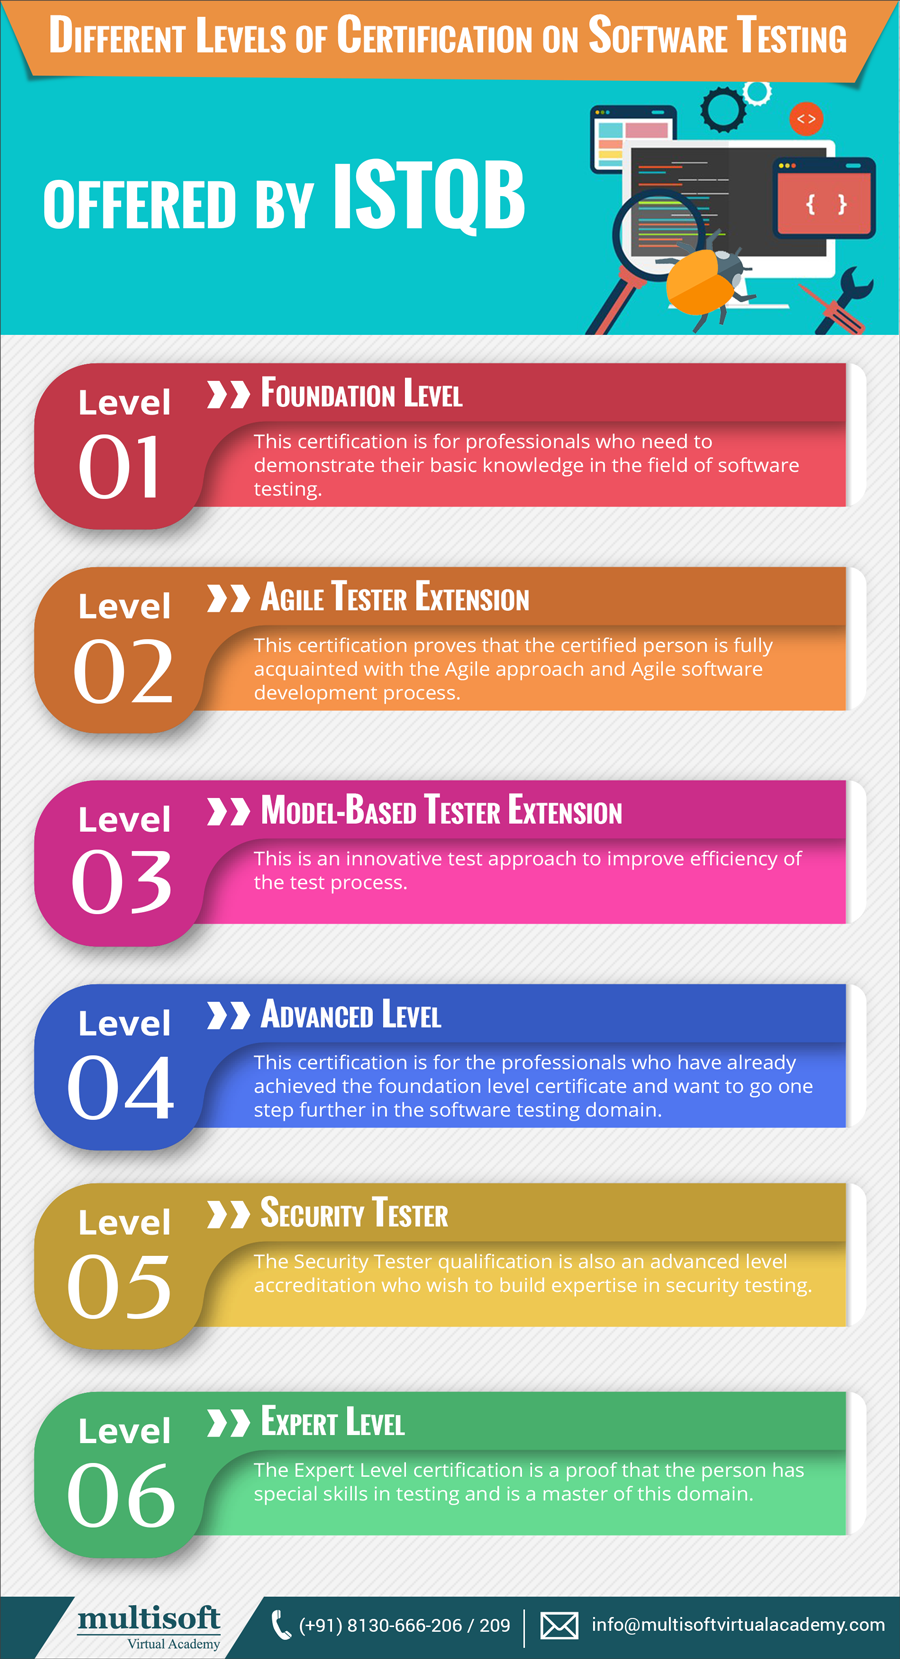 Different Levels Of Certification On Software Testing